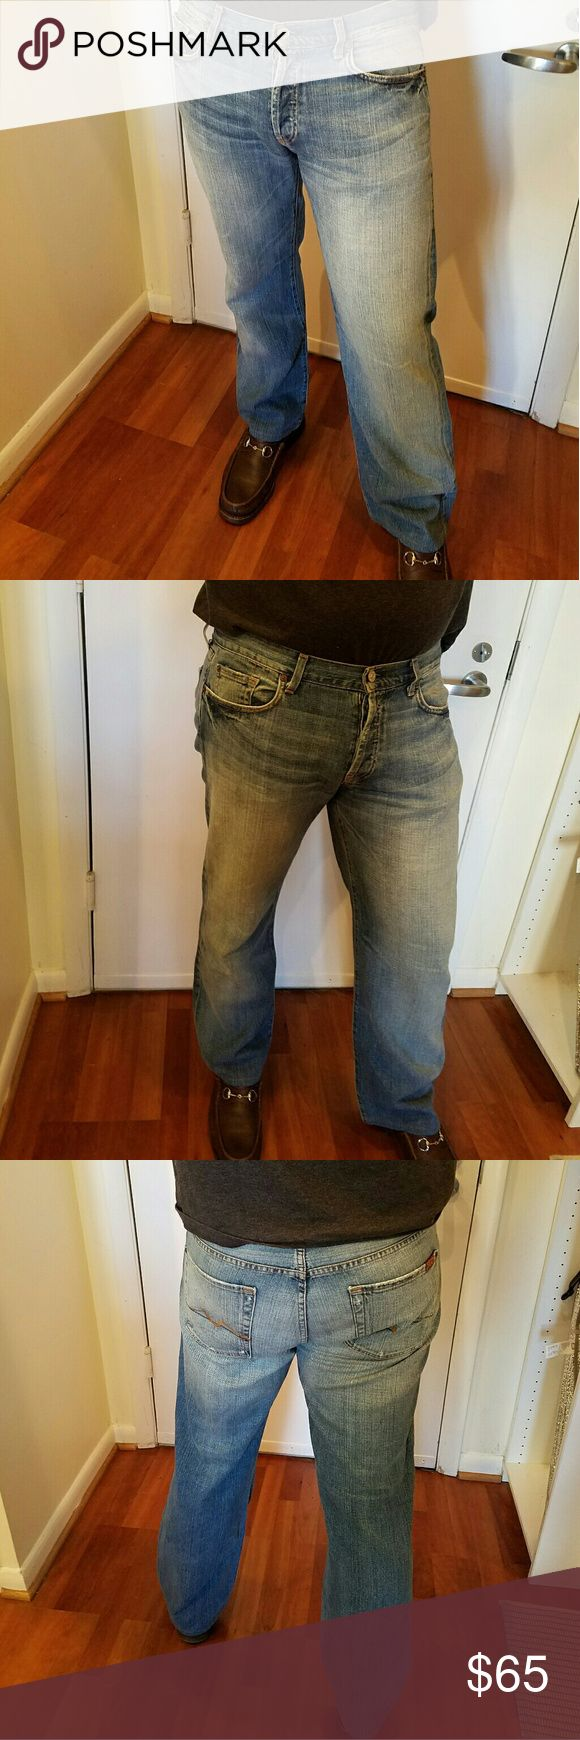 Mens 7 For All Mankind Jeans Mens Seven jeans 36 x 31.5 Relaxed cut. #713629 Button fly  Great wash with some light spots which is perfect for the warmer seasons. 7 For All Mankind Jeans Relaxed